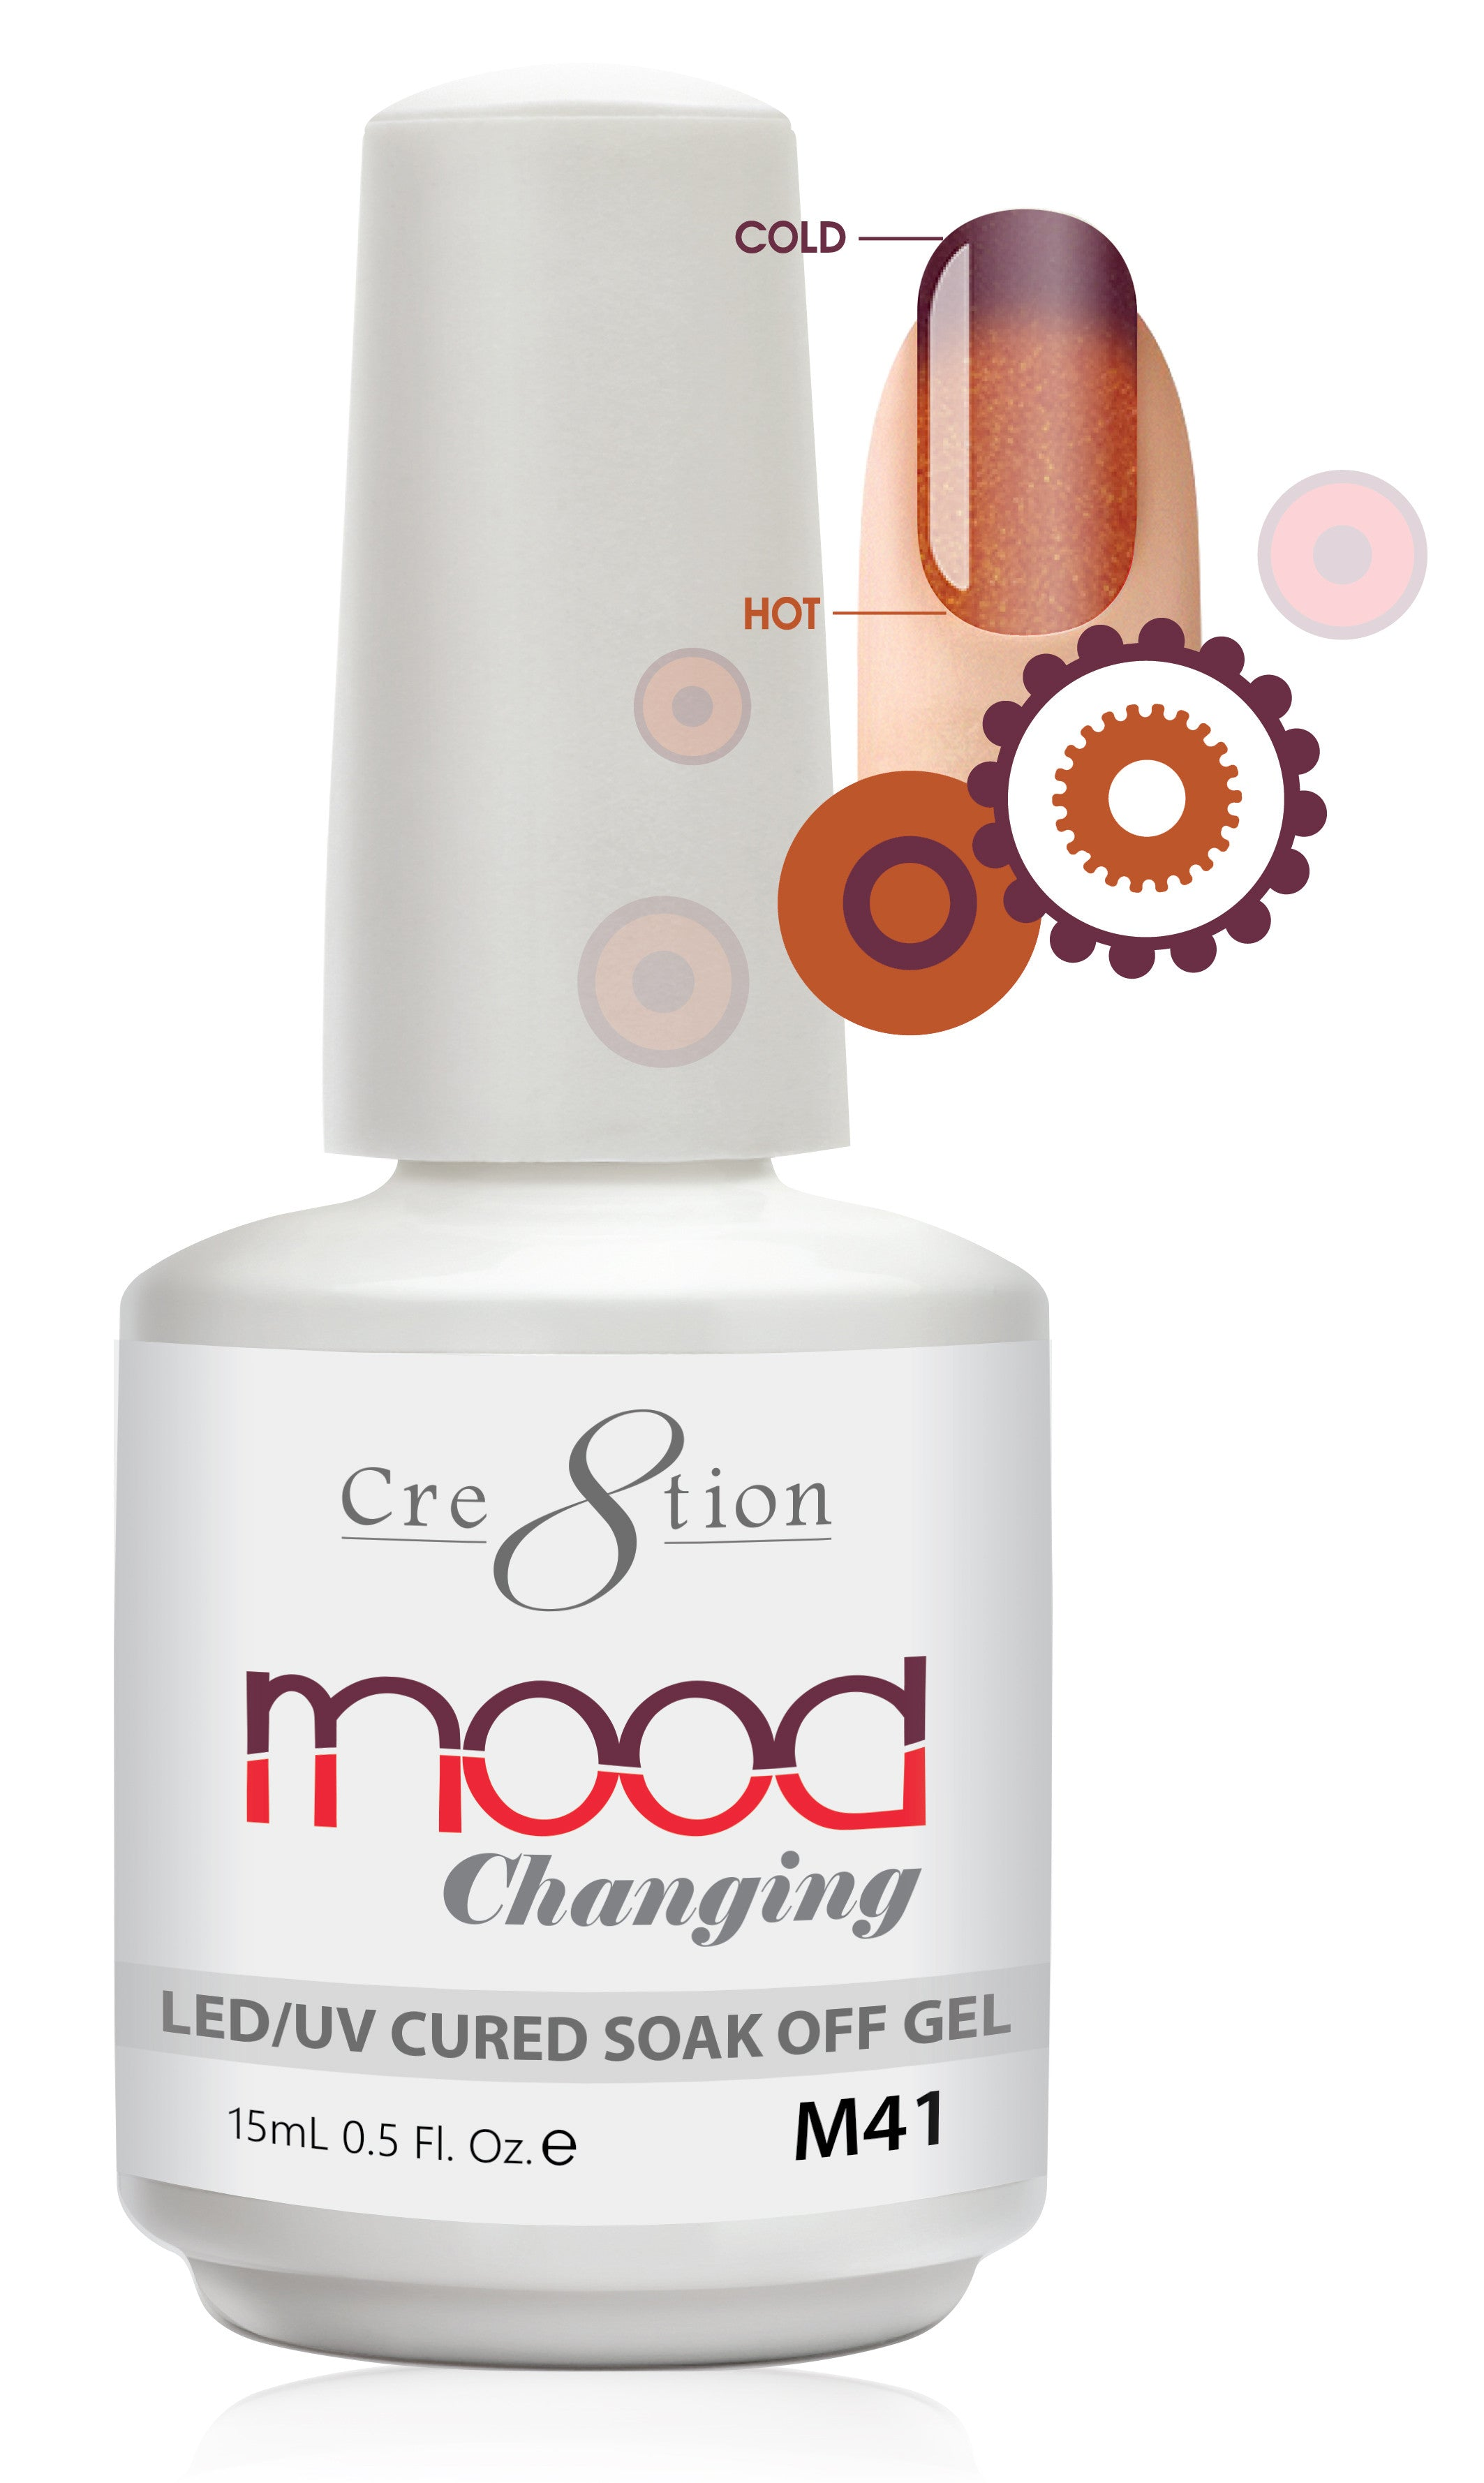 Cre8tion Mood Changing Soak Off Gel M41-Frost